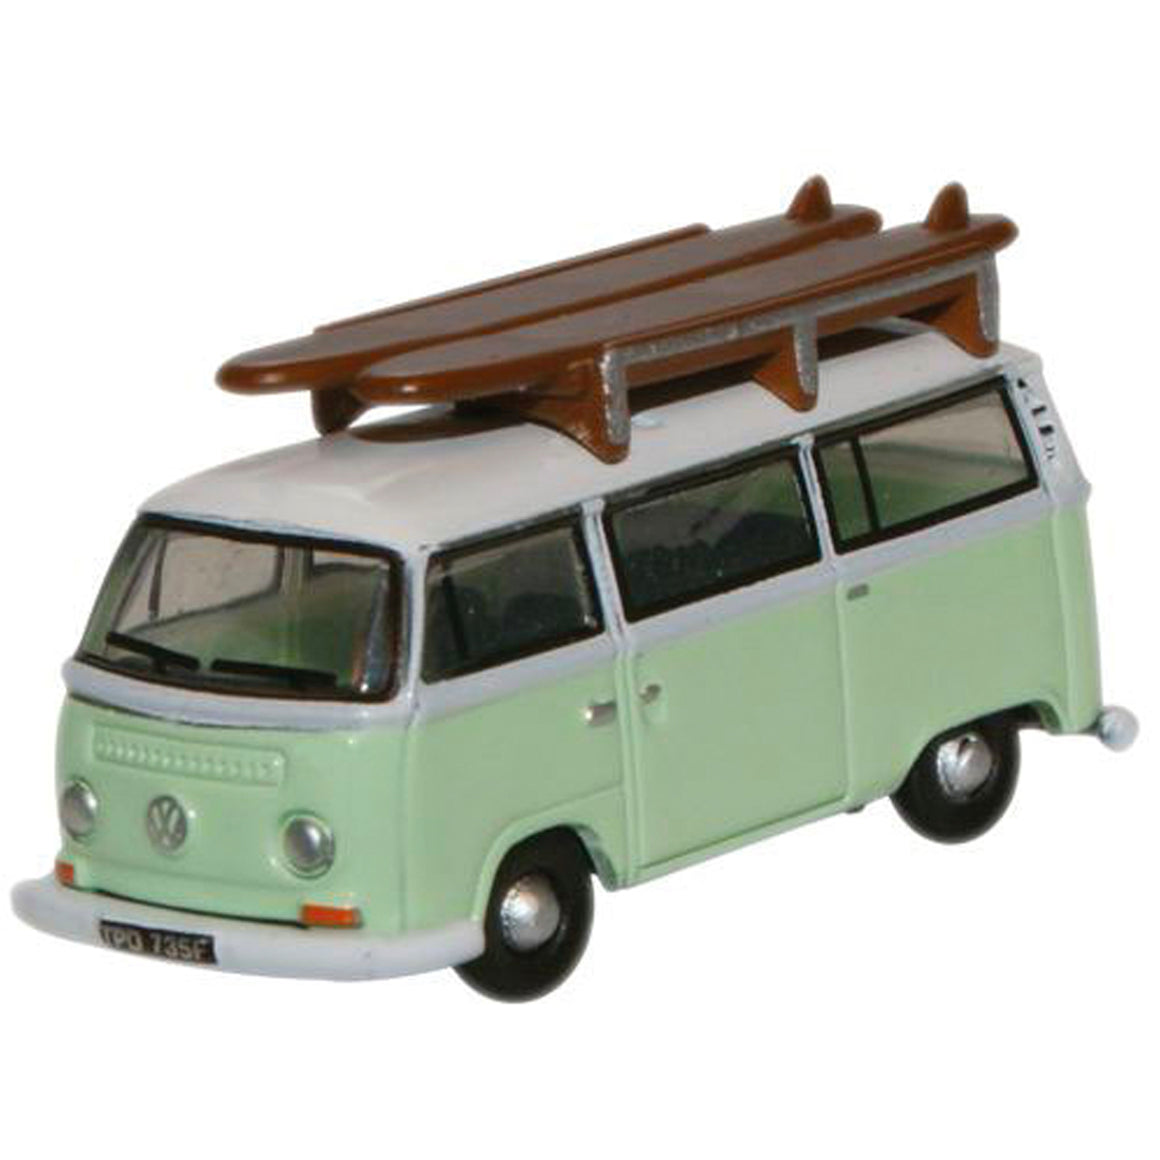 N Scale: Volkswagen Minibus - Birch Green with Surfboards